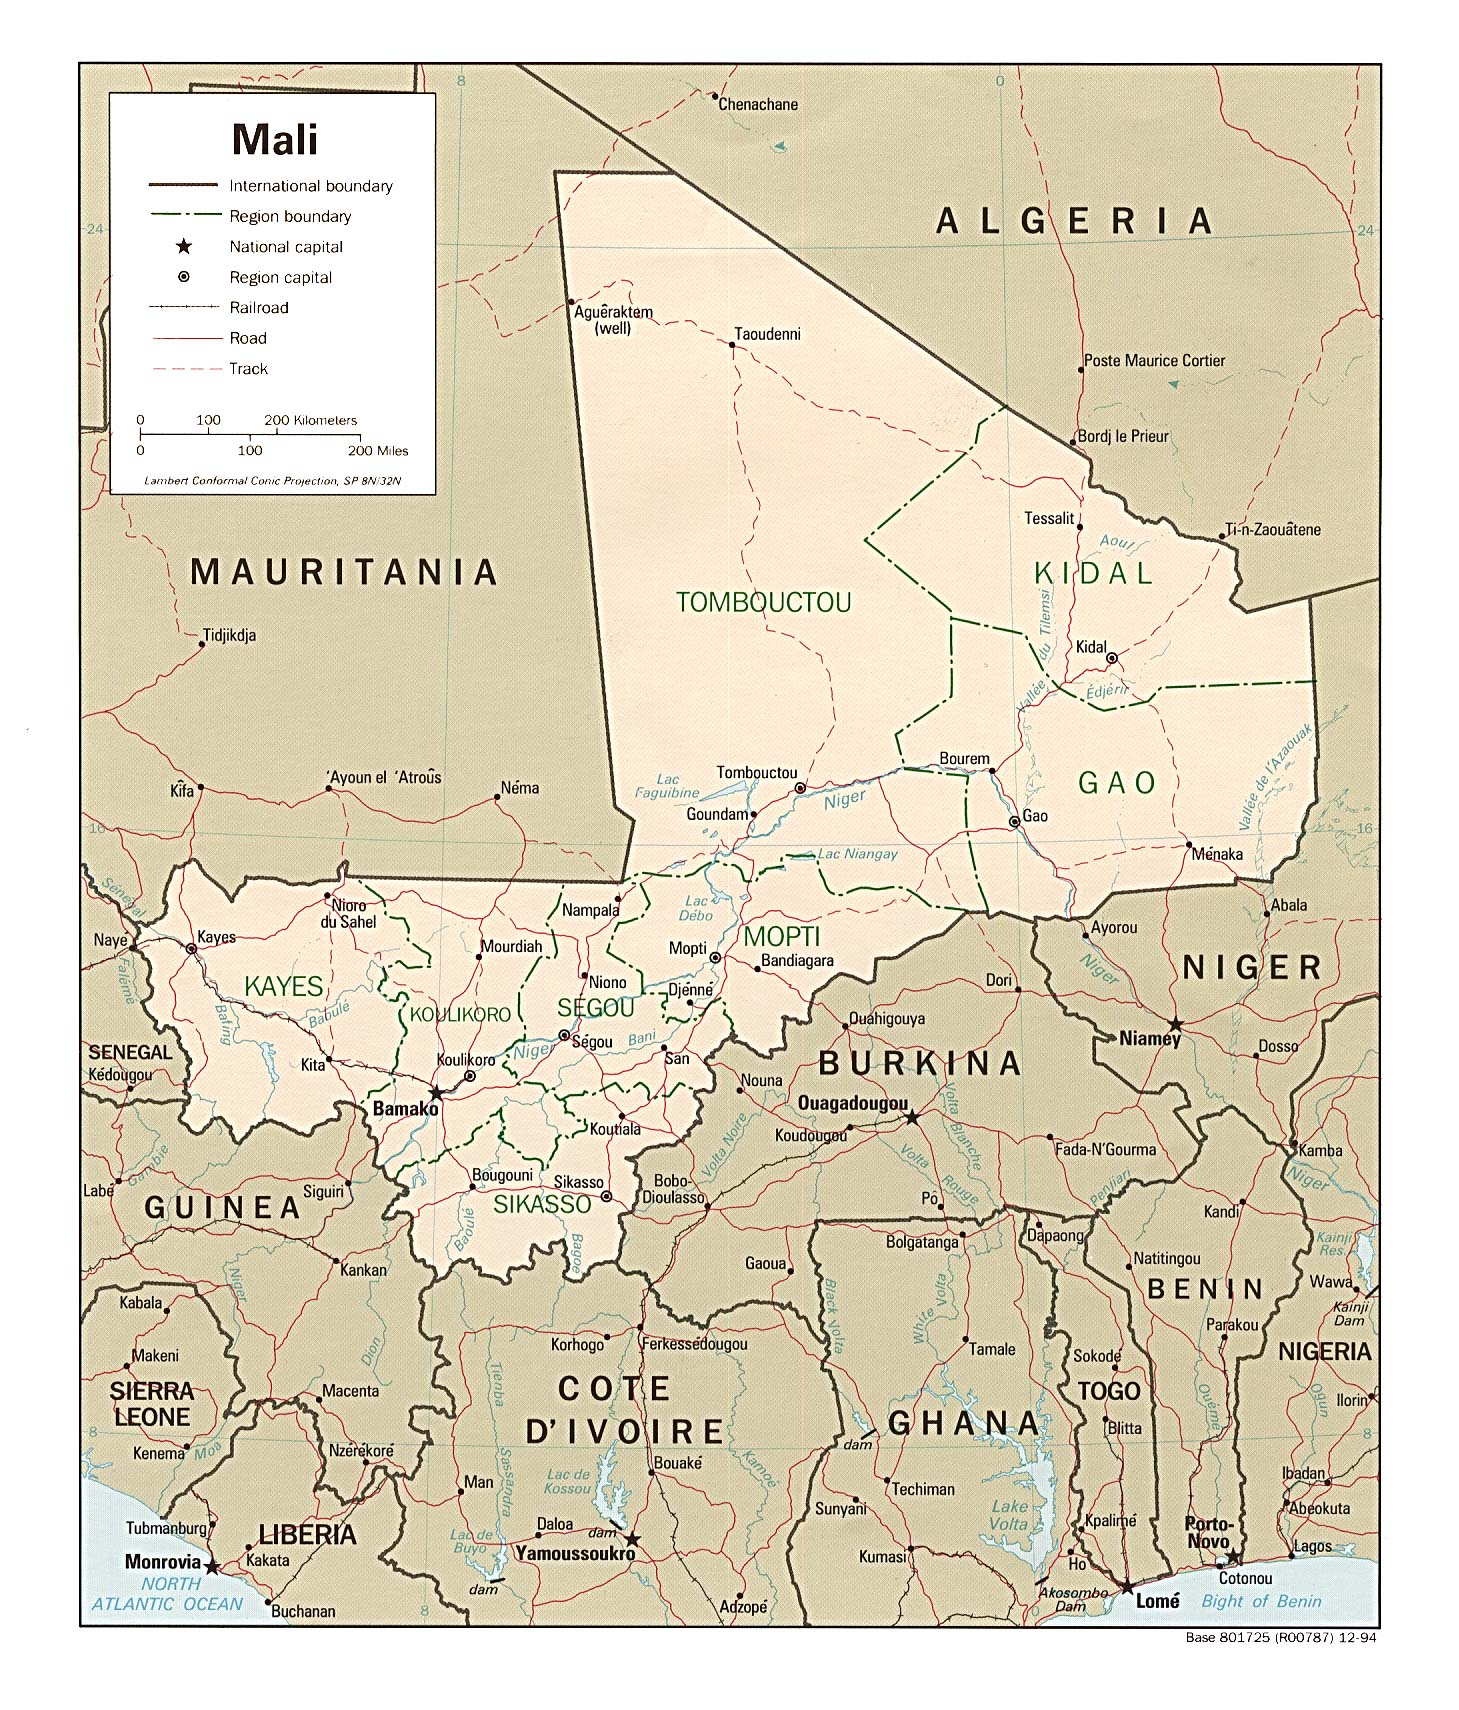 Mali Maps - Perry-Castañeda Map Collection - UT Library Online